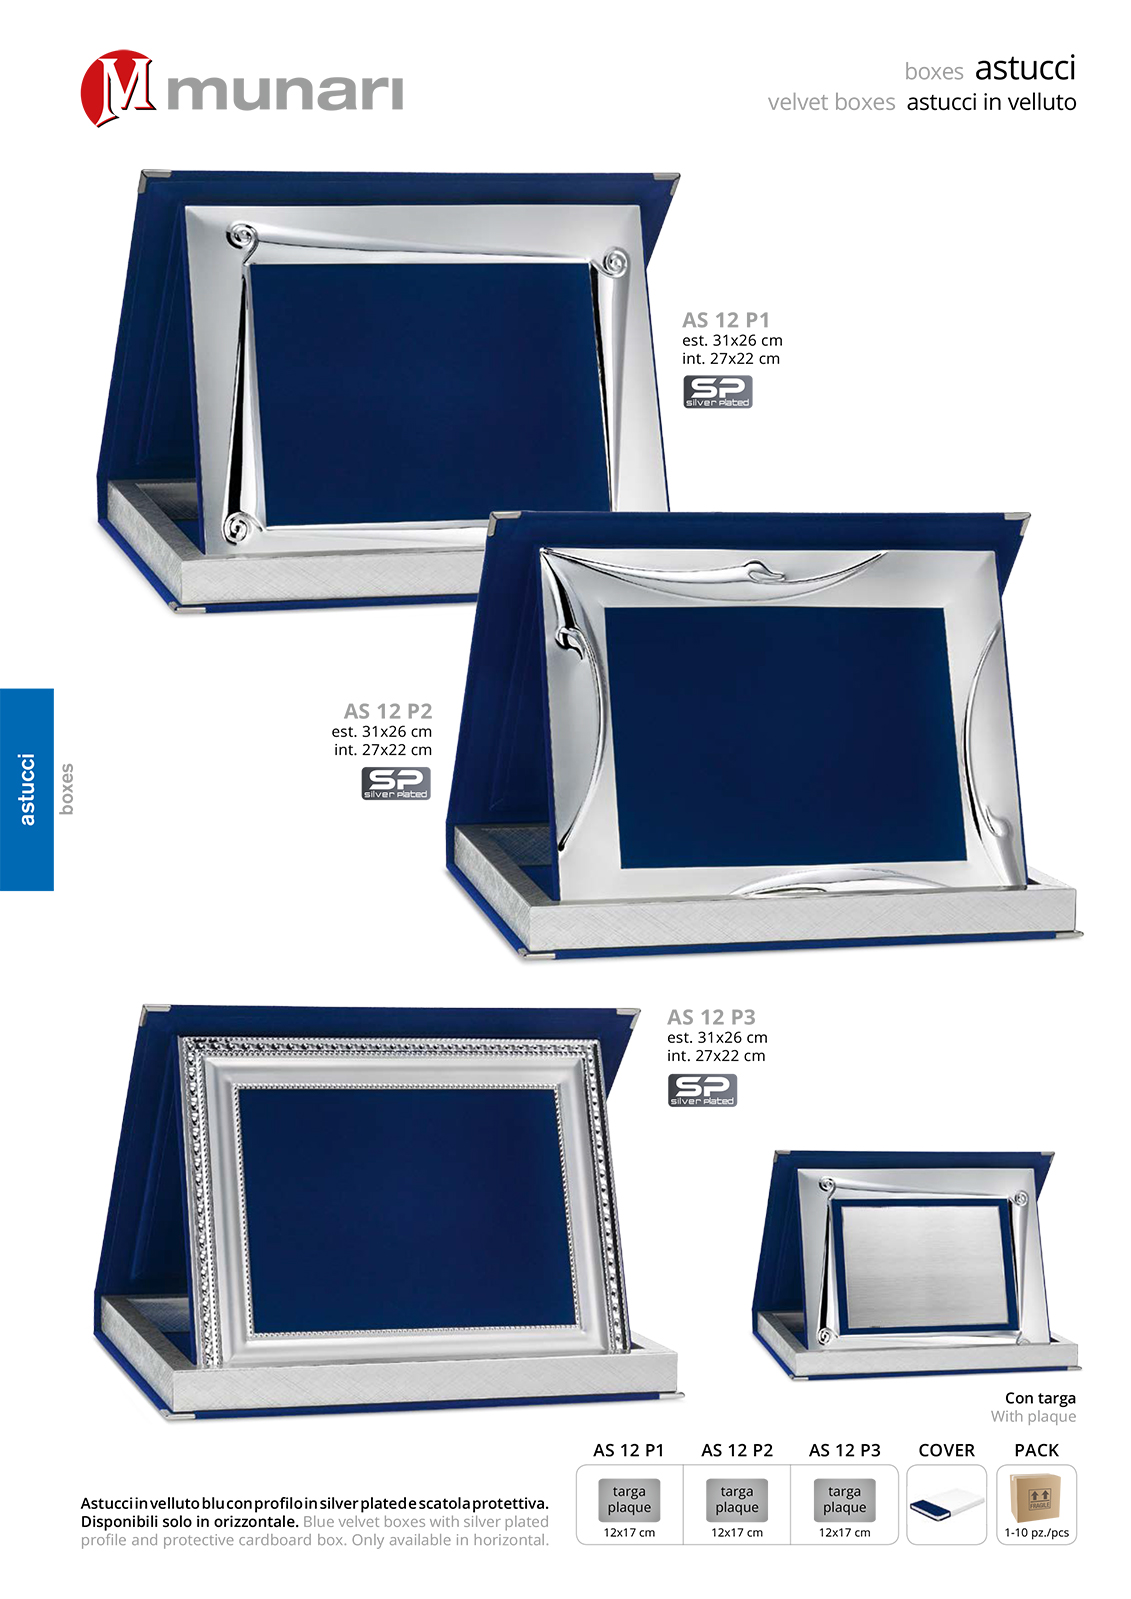 Blue Velvet Boxes AS 12 P2 with Silver Plated Profile